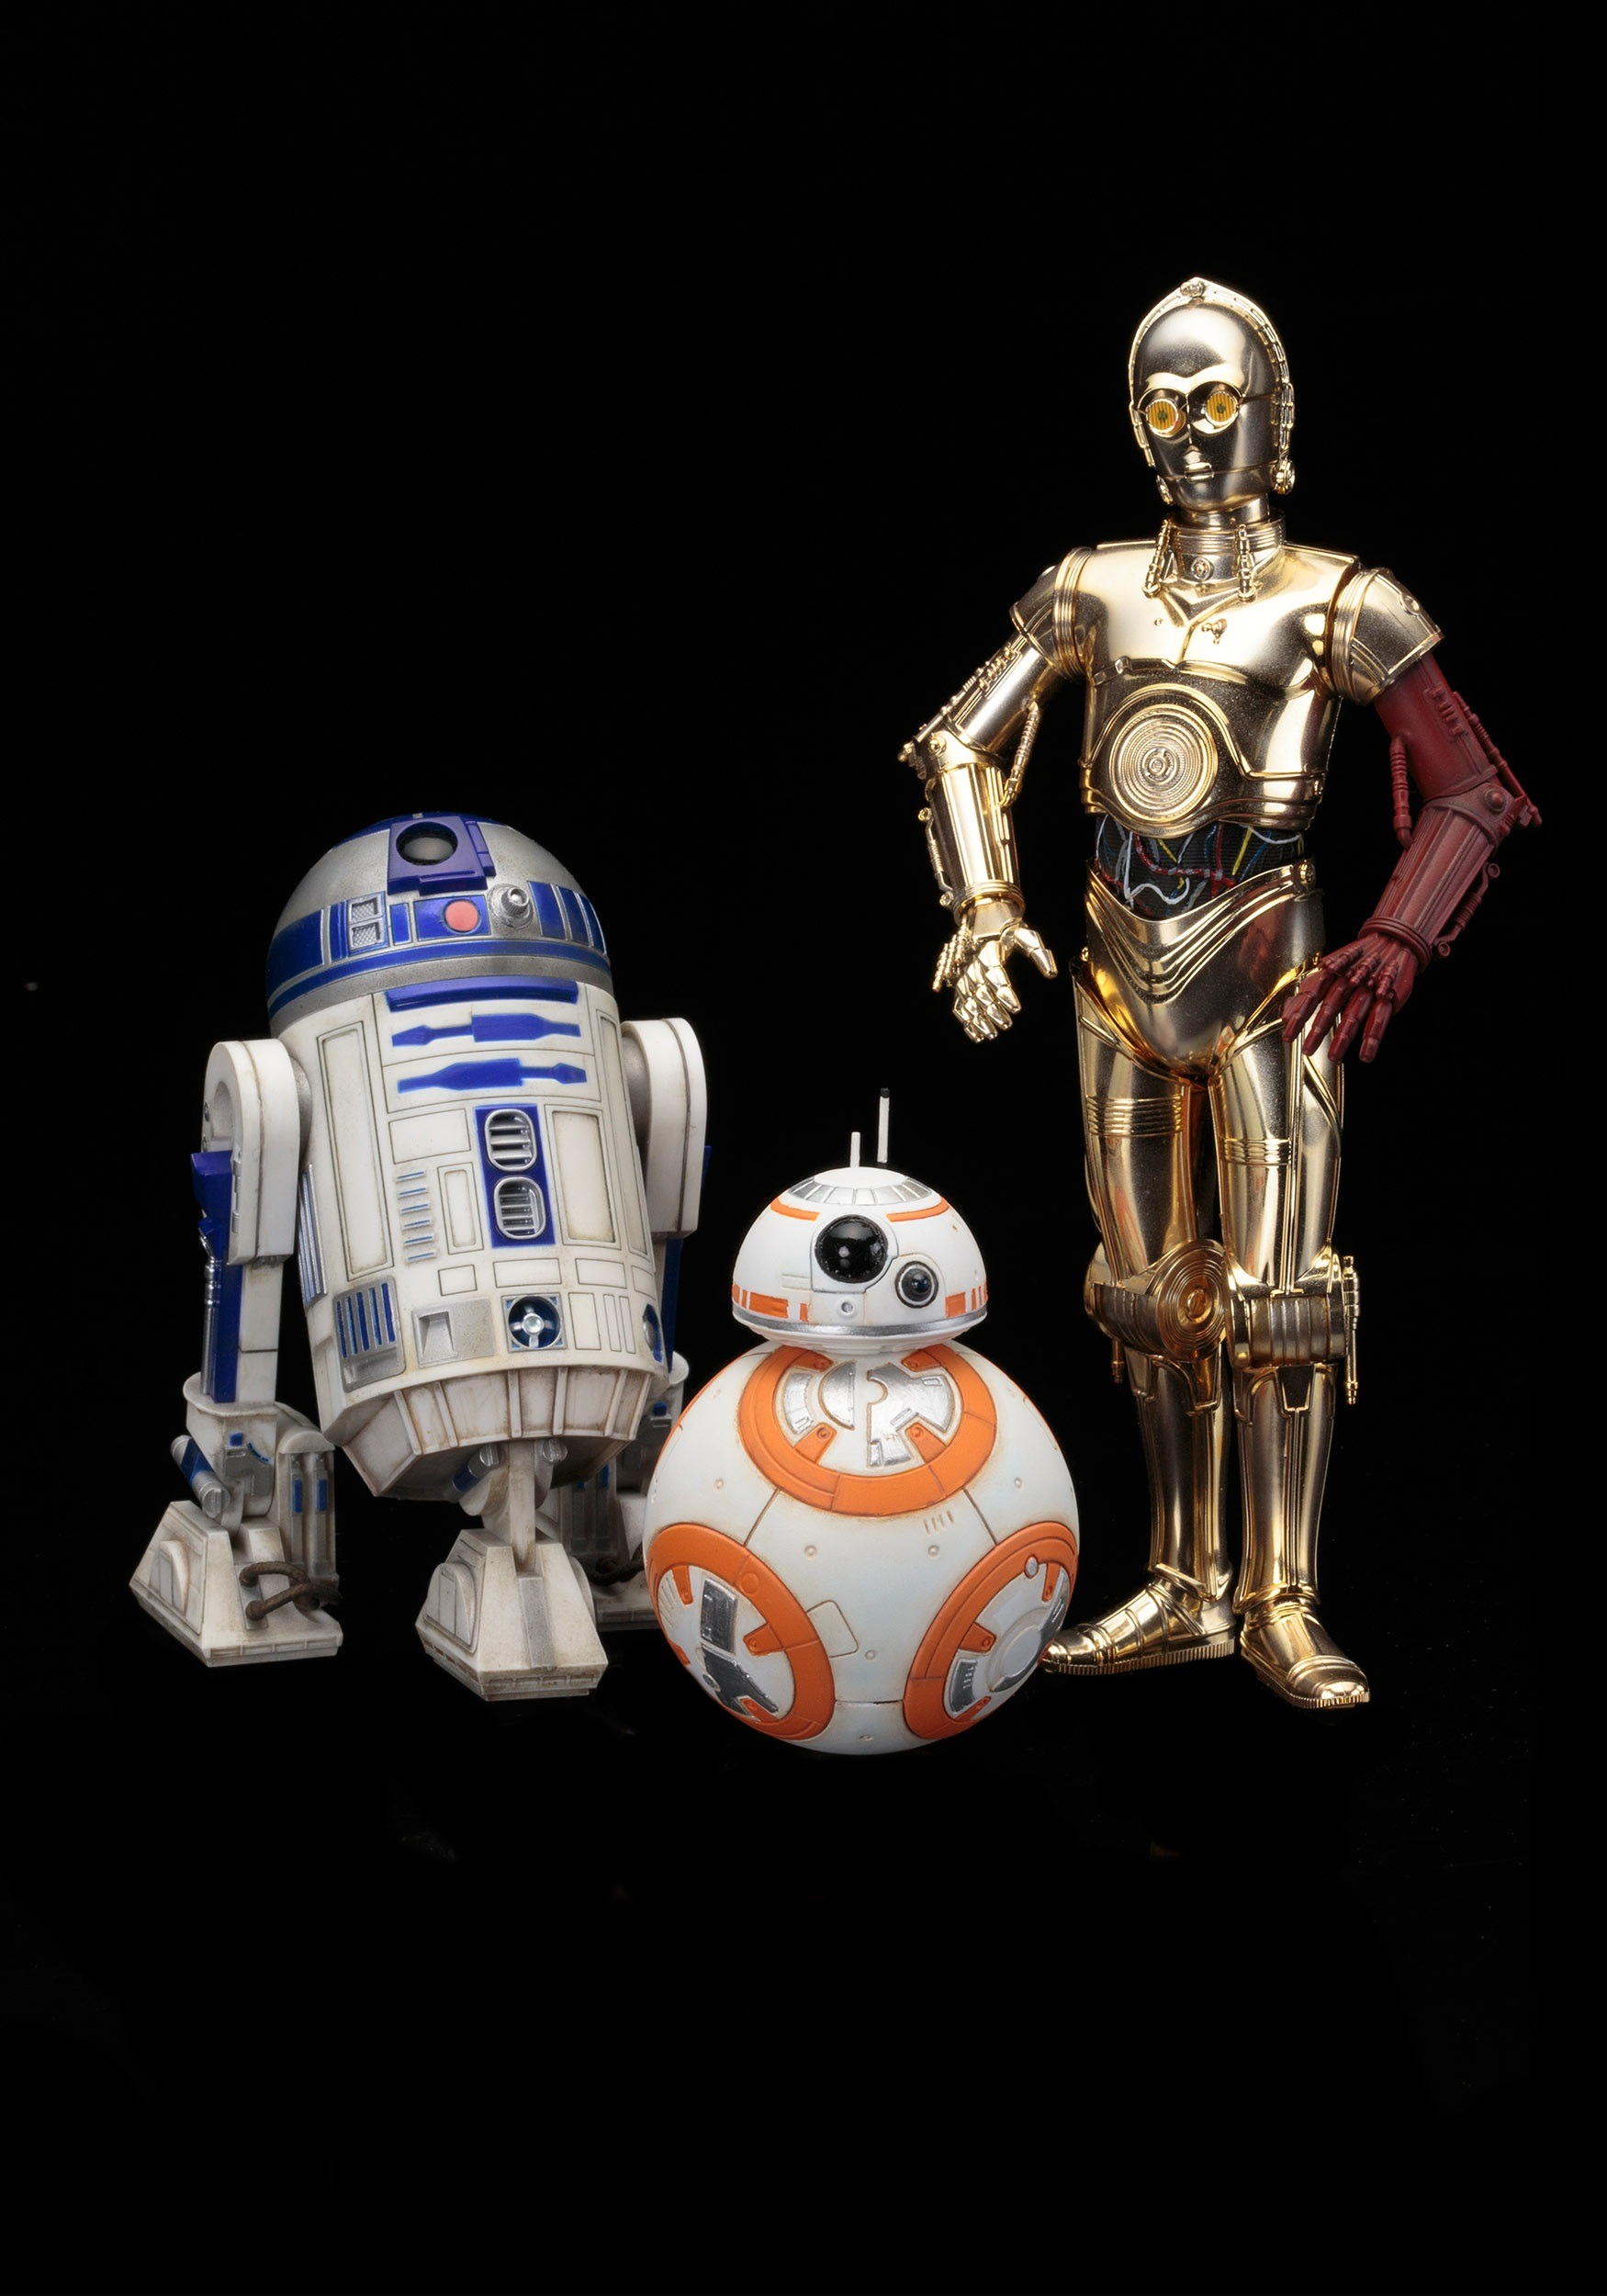 STAR WARS C-3PO & R2-D2 WITH BB-8 ARTFX STATUE SET